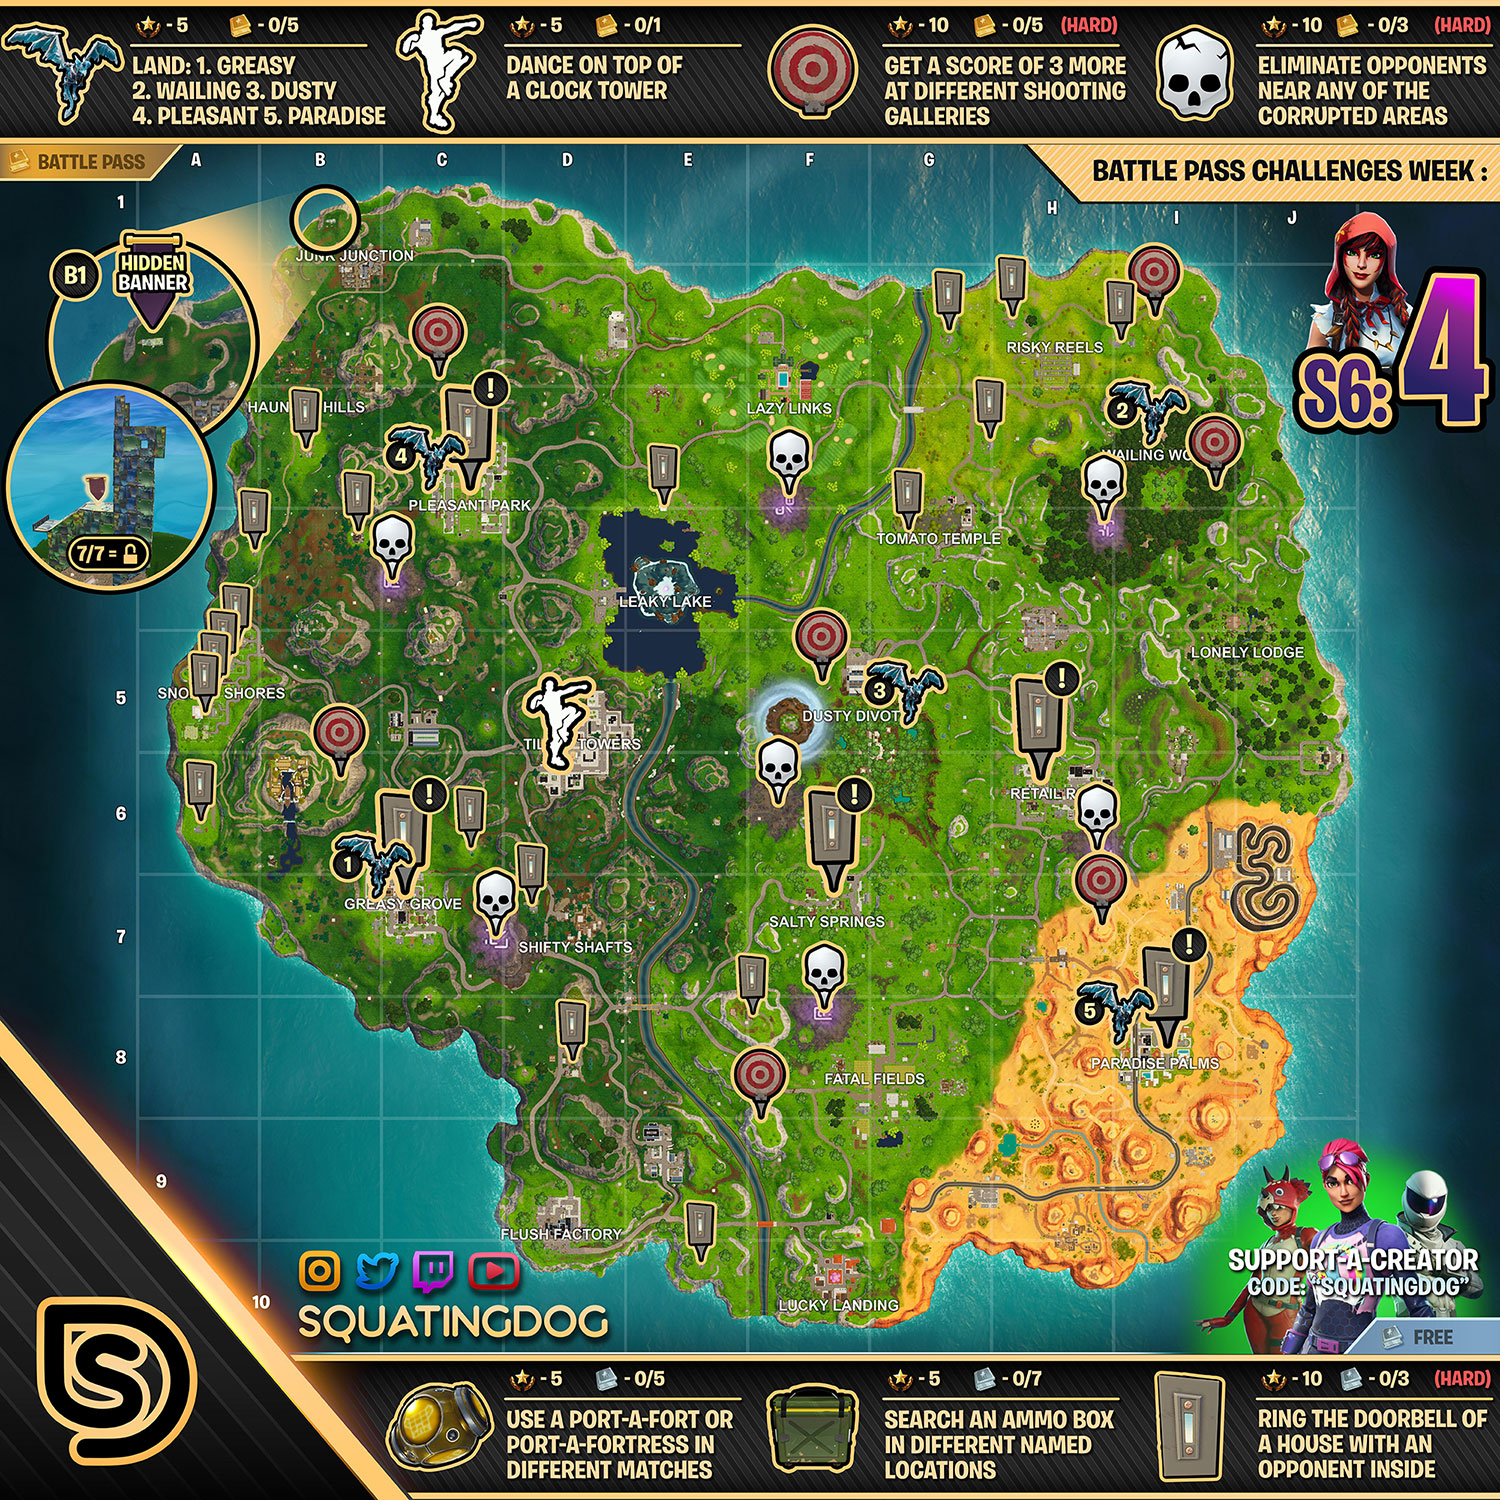 shooting gallery fortnite locations